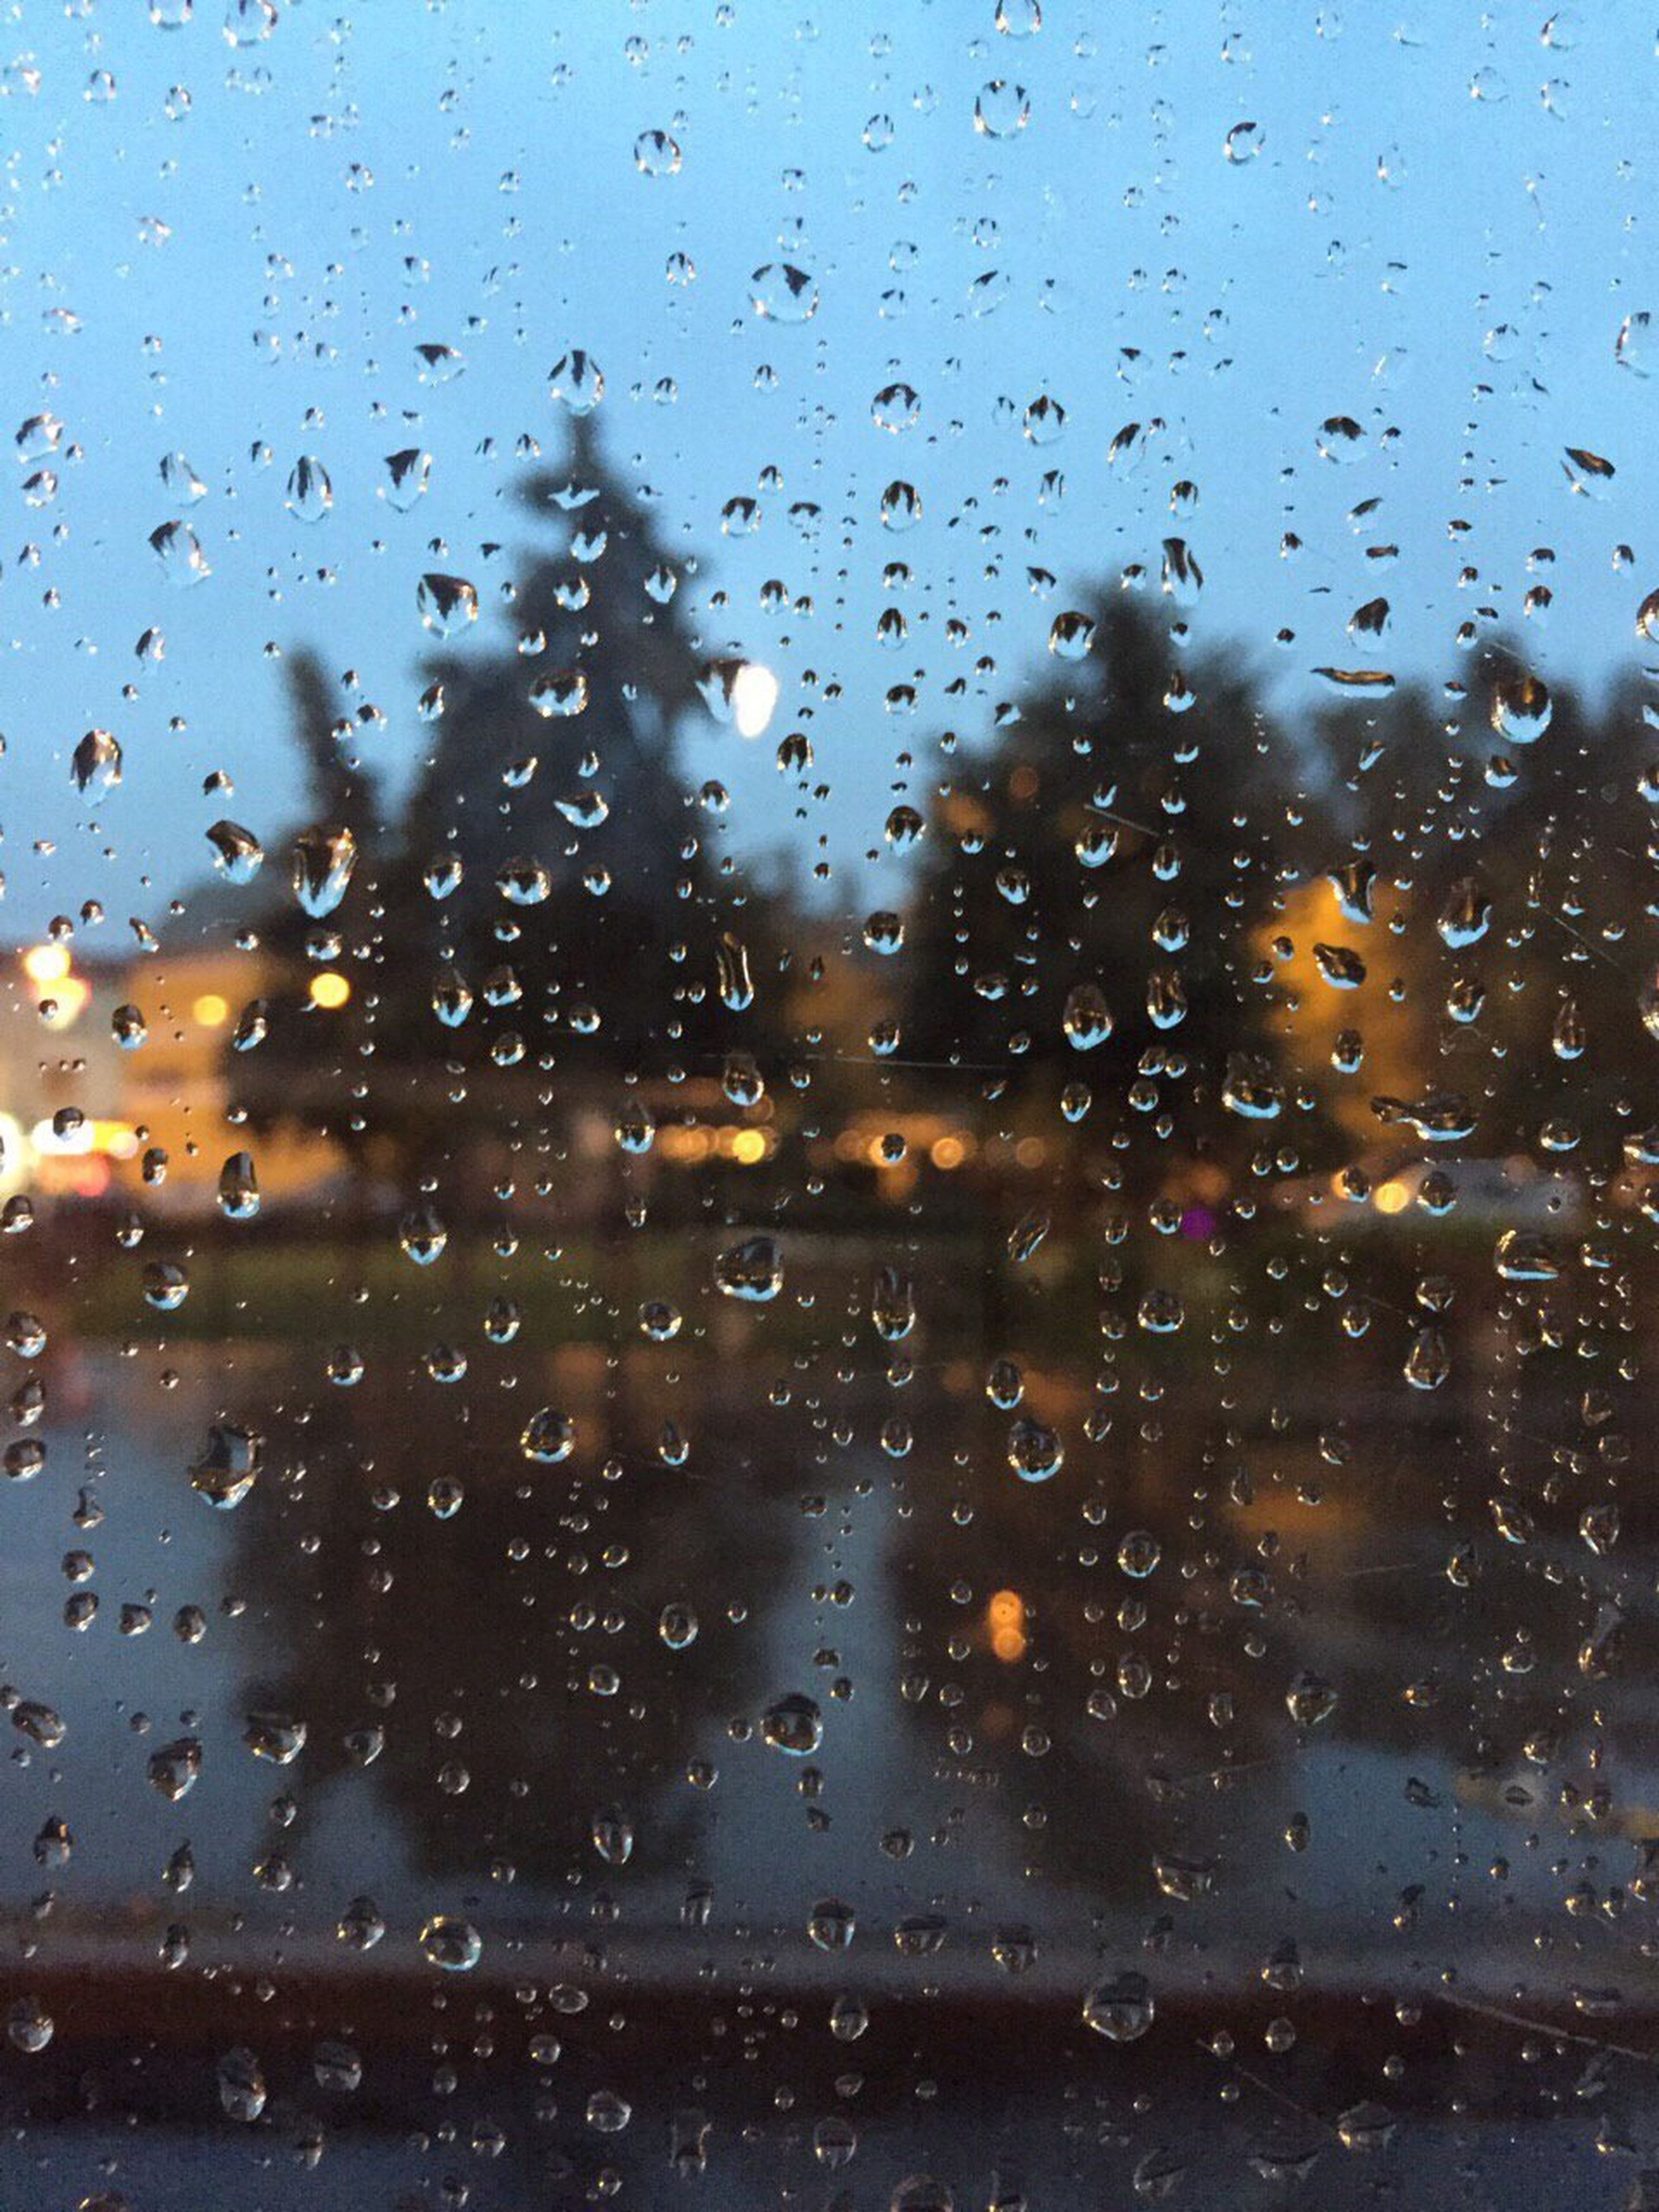 glass - material, window, transparent, wet, drop, weather, rain, transportation, no people, car, sky, vehicle interior, indoors, close-up, water, rainy season, day, backgrounds, raindrop, nature